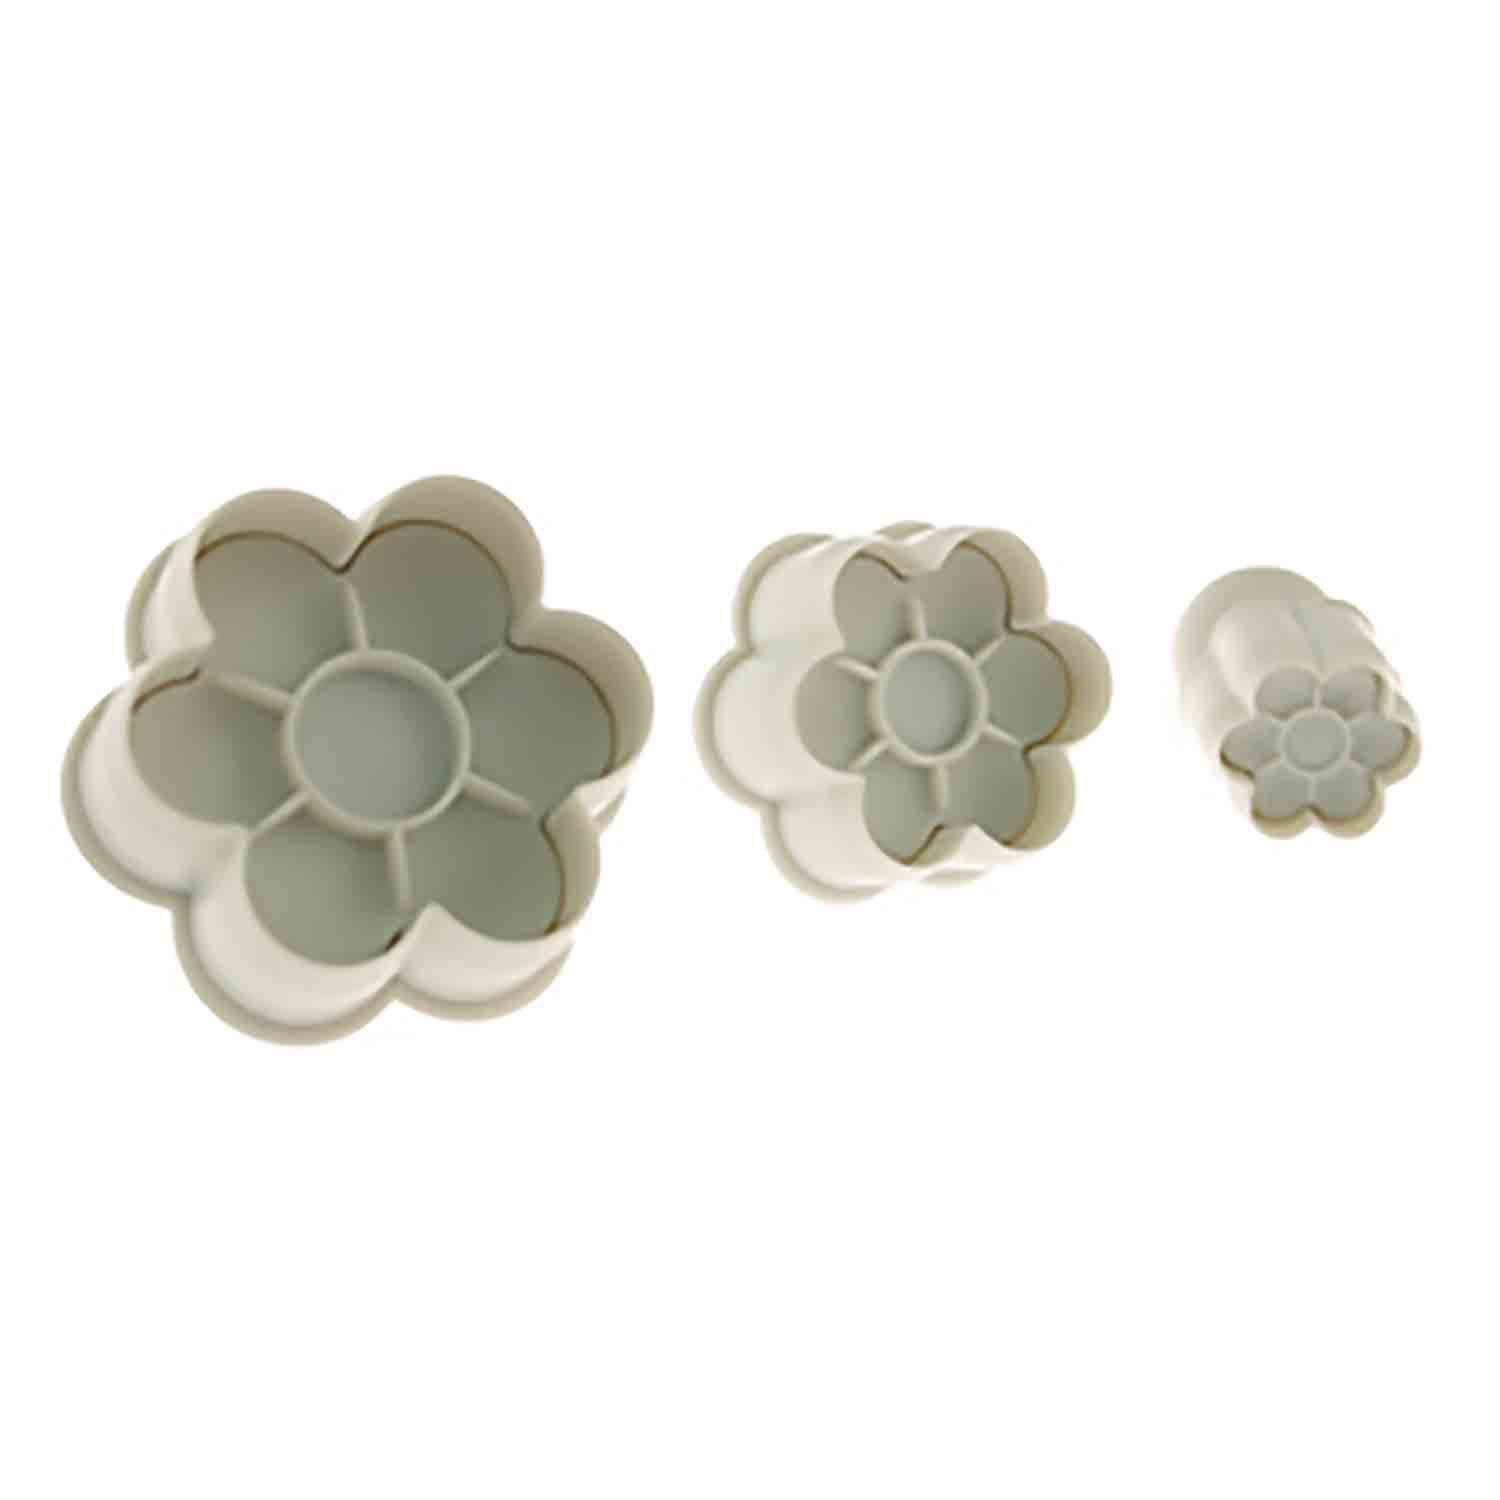 6 Petal Flower Plunger Cutter Set